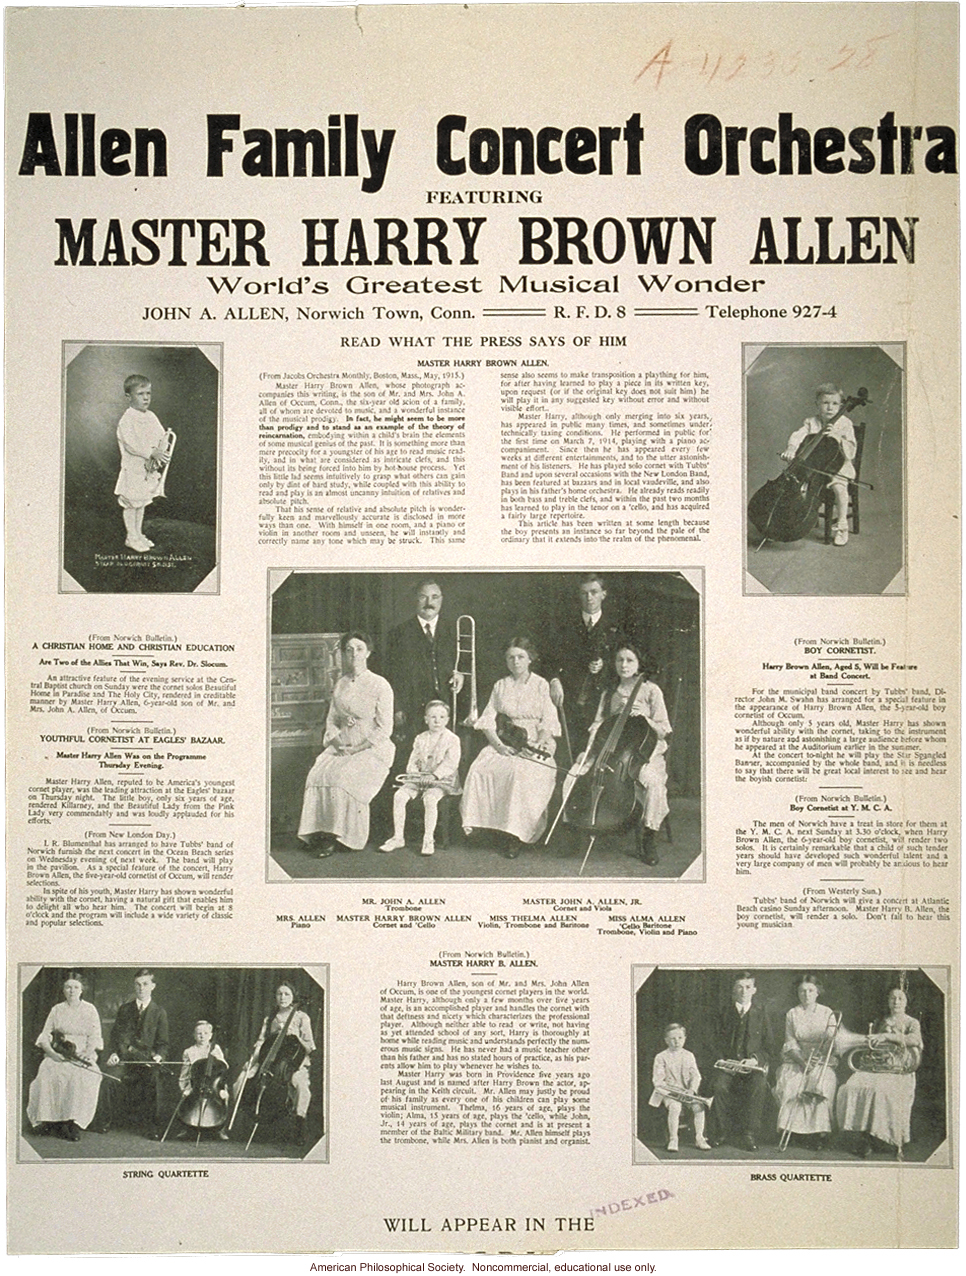 &quote;Allen family concert orchestra, featuring Master Harry Allen, world's greatest musical wonder&quote;